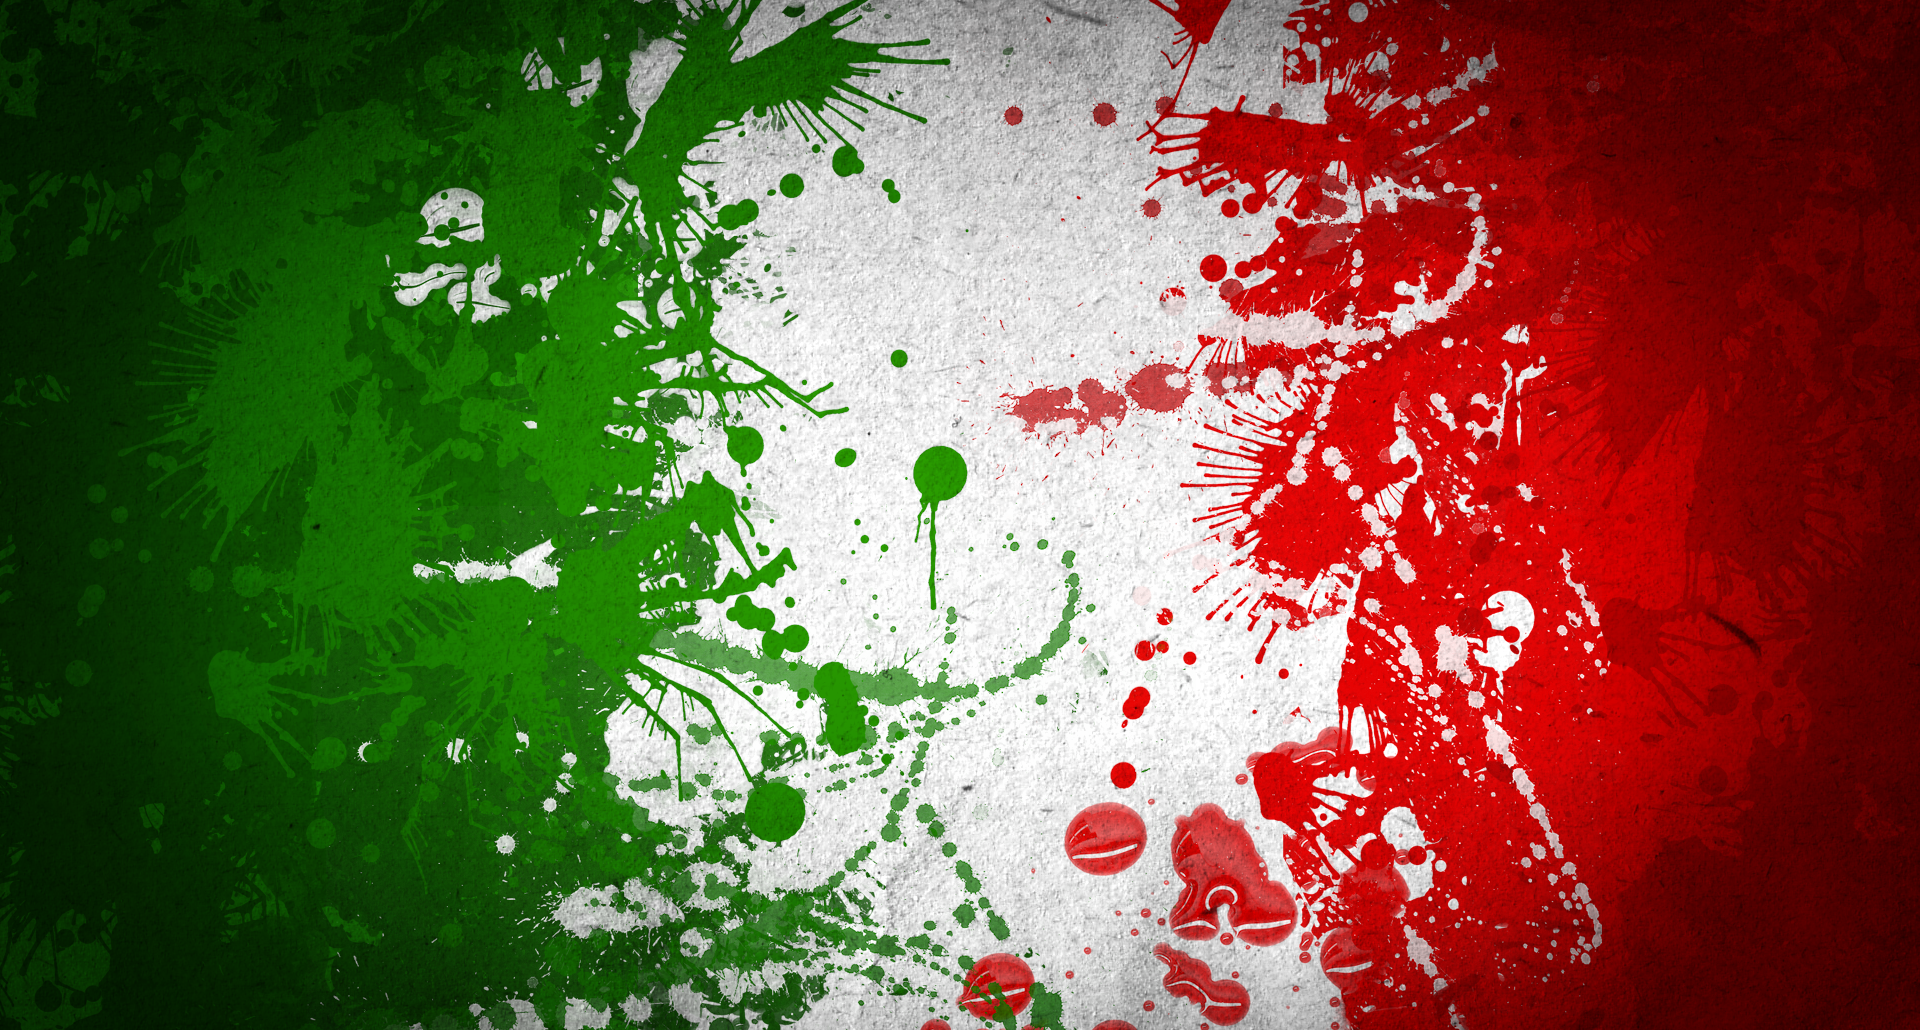 hd wallpapers incoming search terms mexican flag cool mexico flag Car 1920x1030